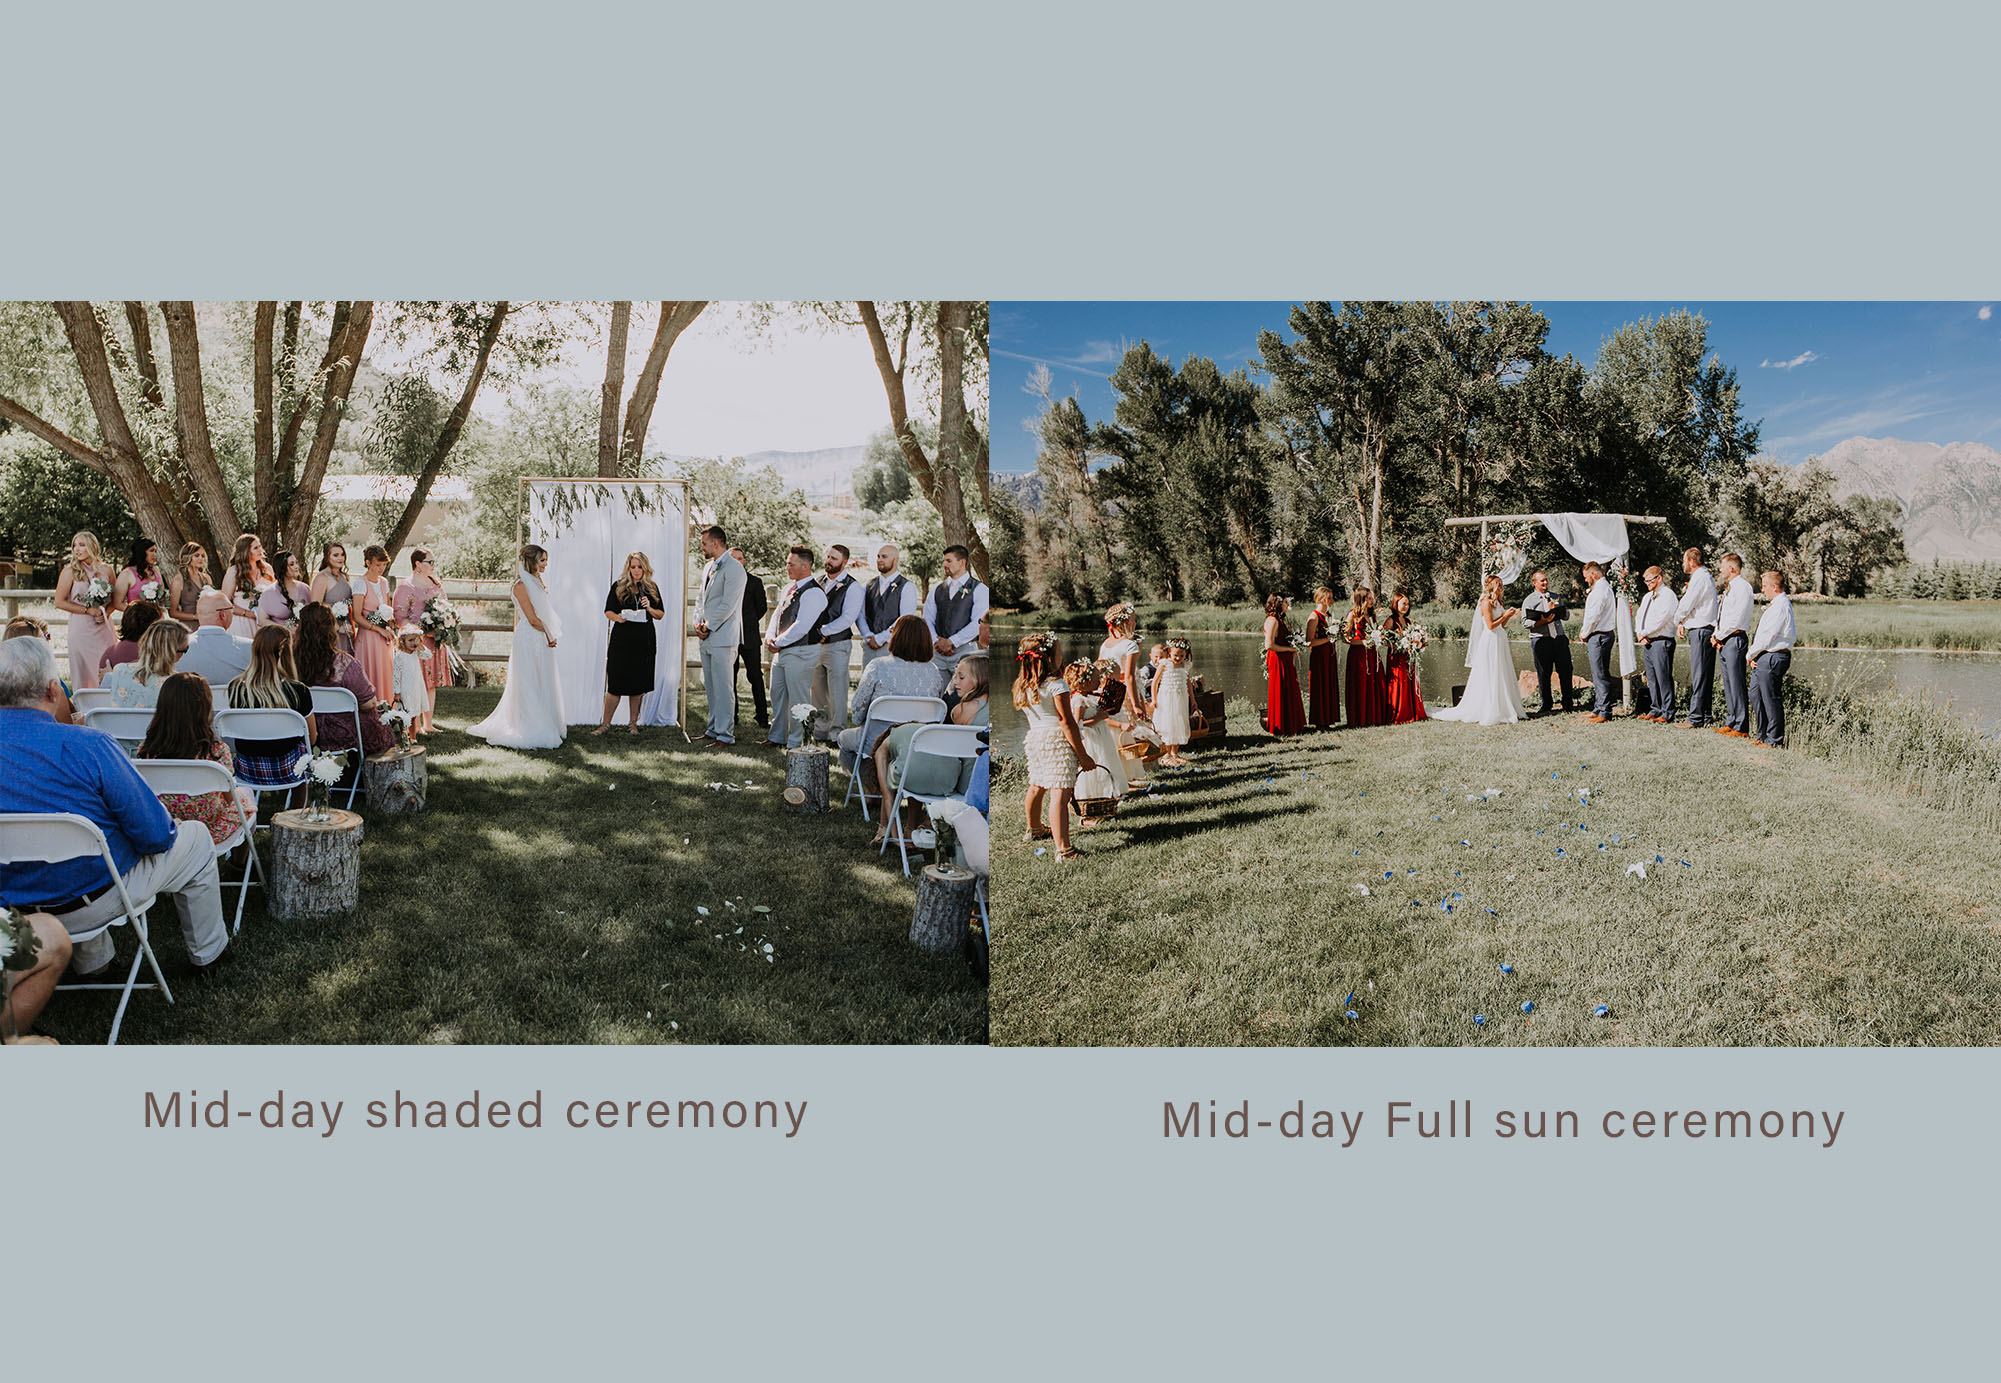 Here is an example harsh vs shaded lighting - both weddings were mid summer*